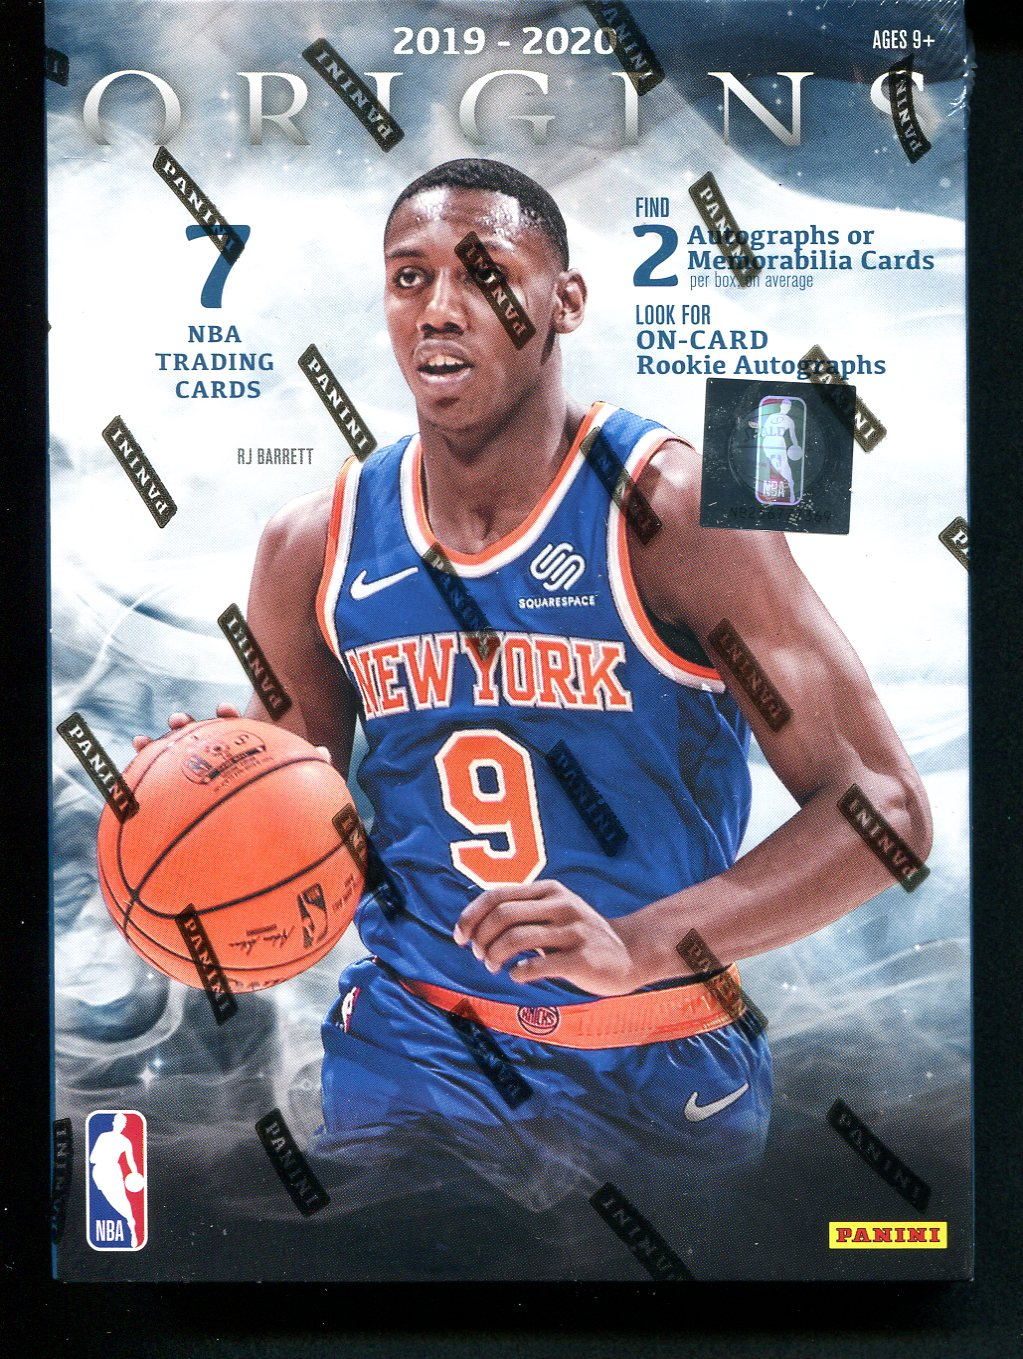 2019/20 Panini Origins Basketball Hobby Box